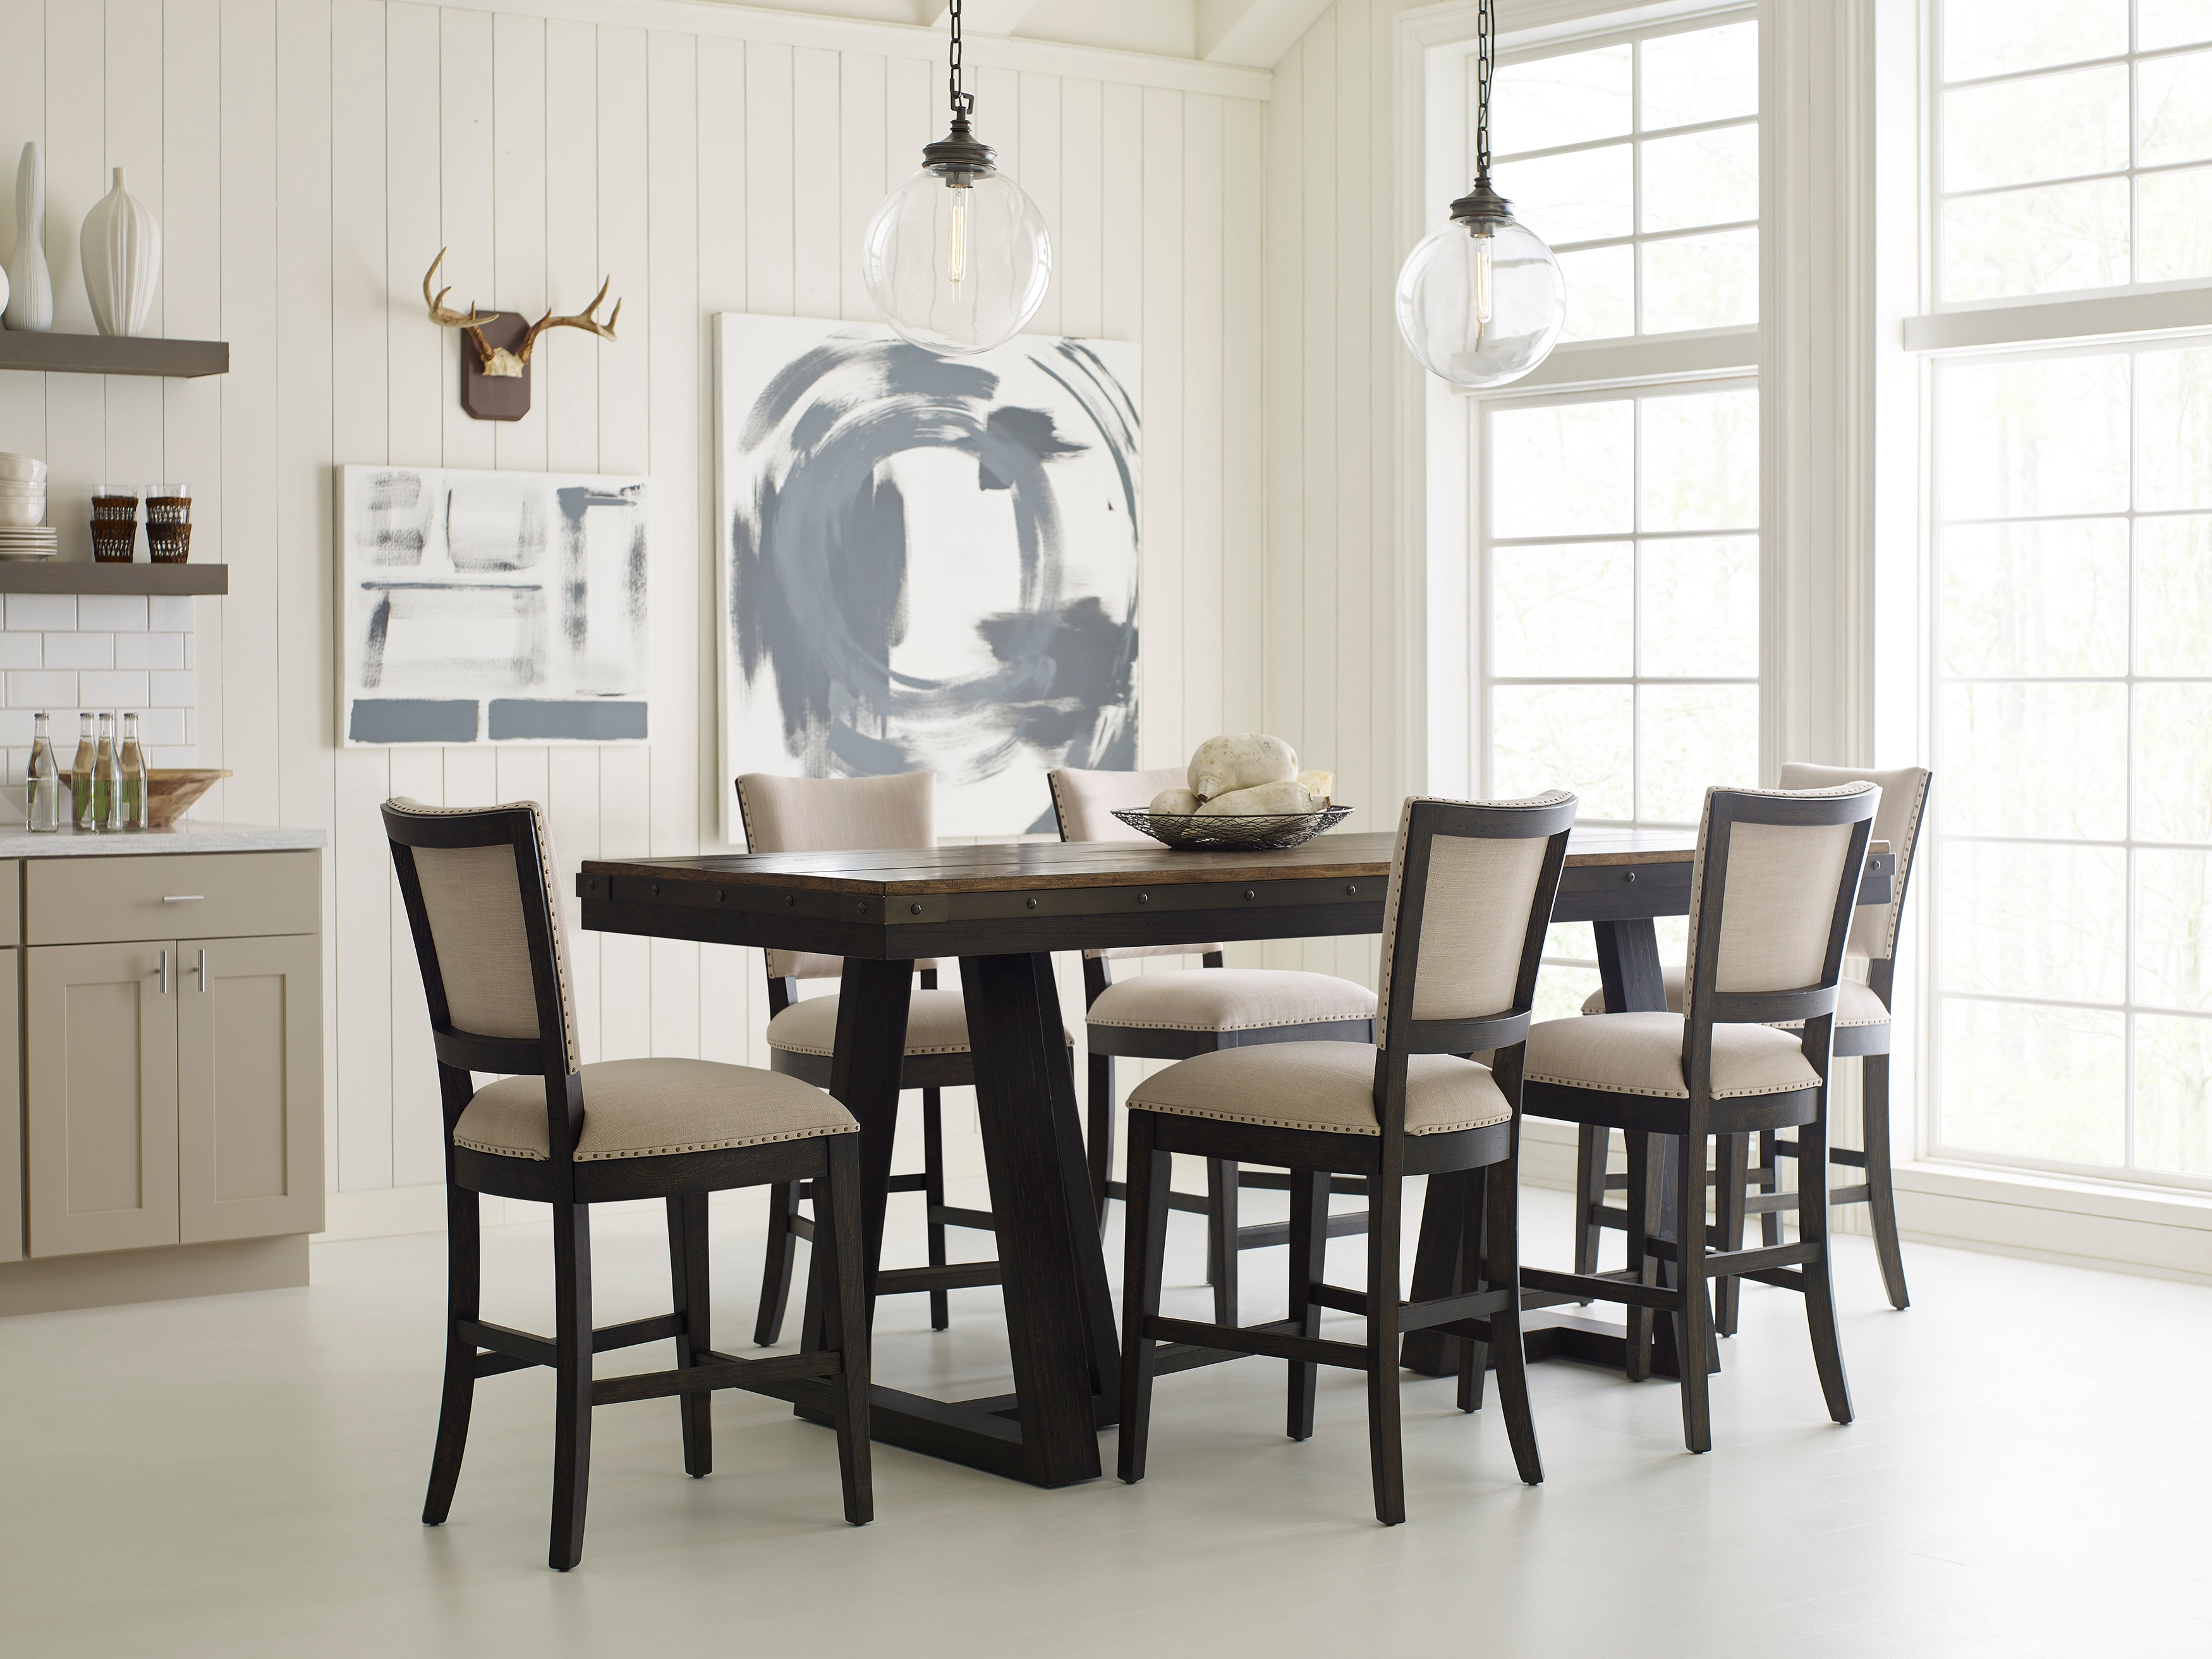 counter height dining table set. Plank Road 5-Piece Counter Height Dining Room Set: Includes Table \u0026 4 Chairs Set